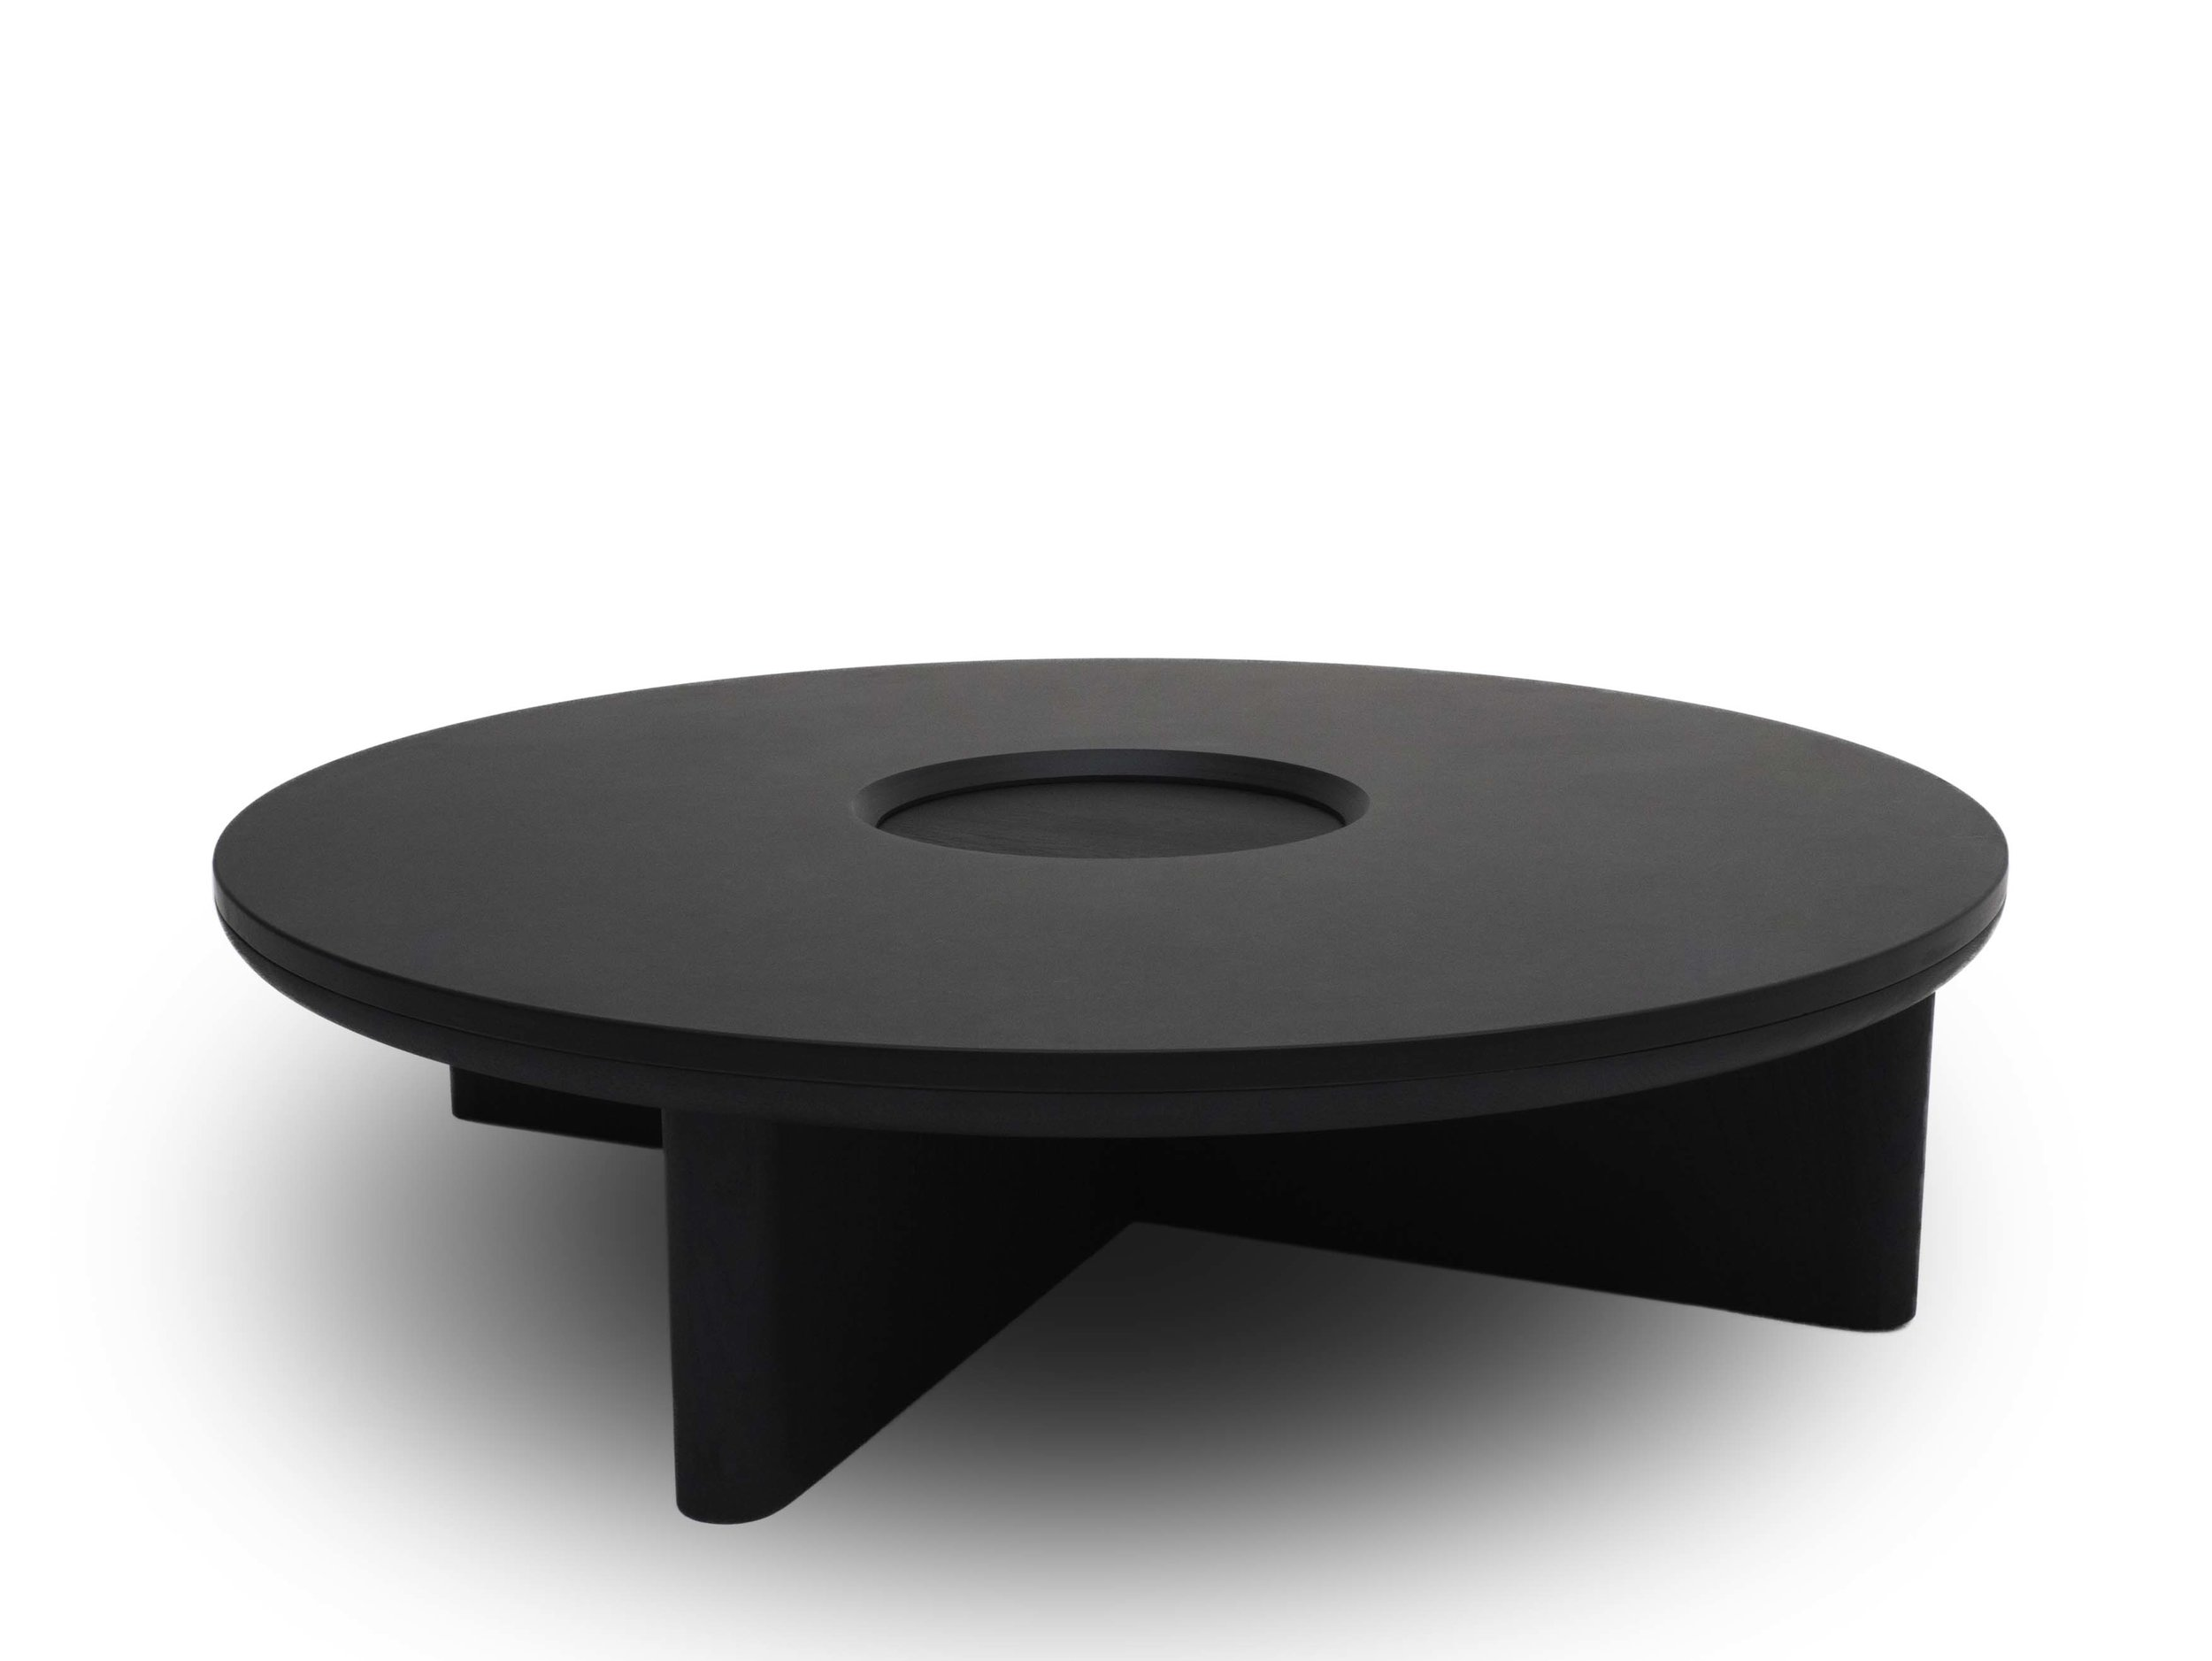 Brodie Neill's  coffee table for  Made in Ratio  features a massive slab of Cornish slate to great effect. Suitable supported by a solid oak cross base, the table is monolithic but extremely subtle to boot with its use of black on black.